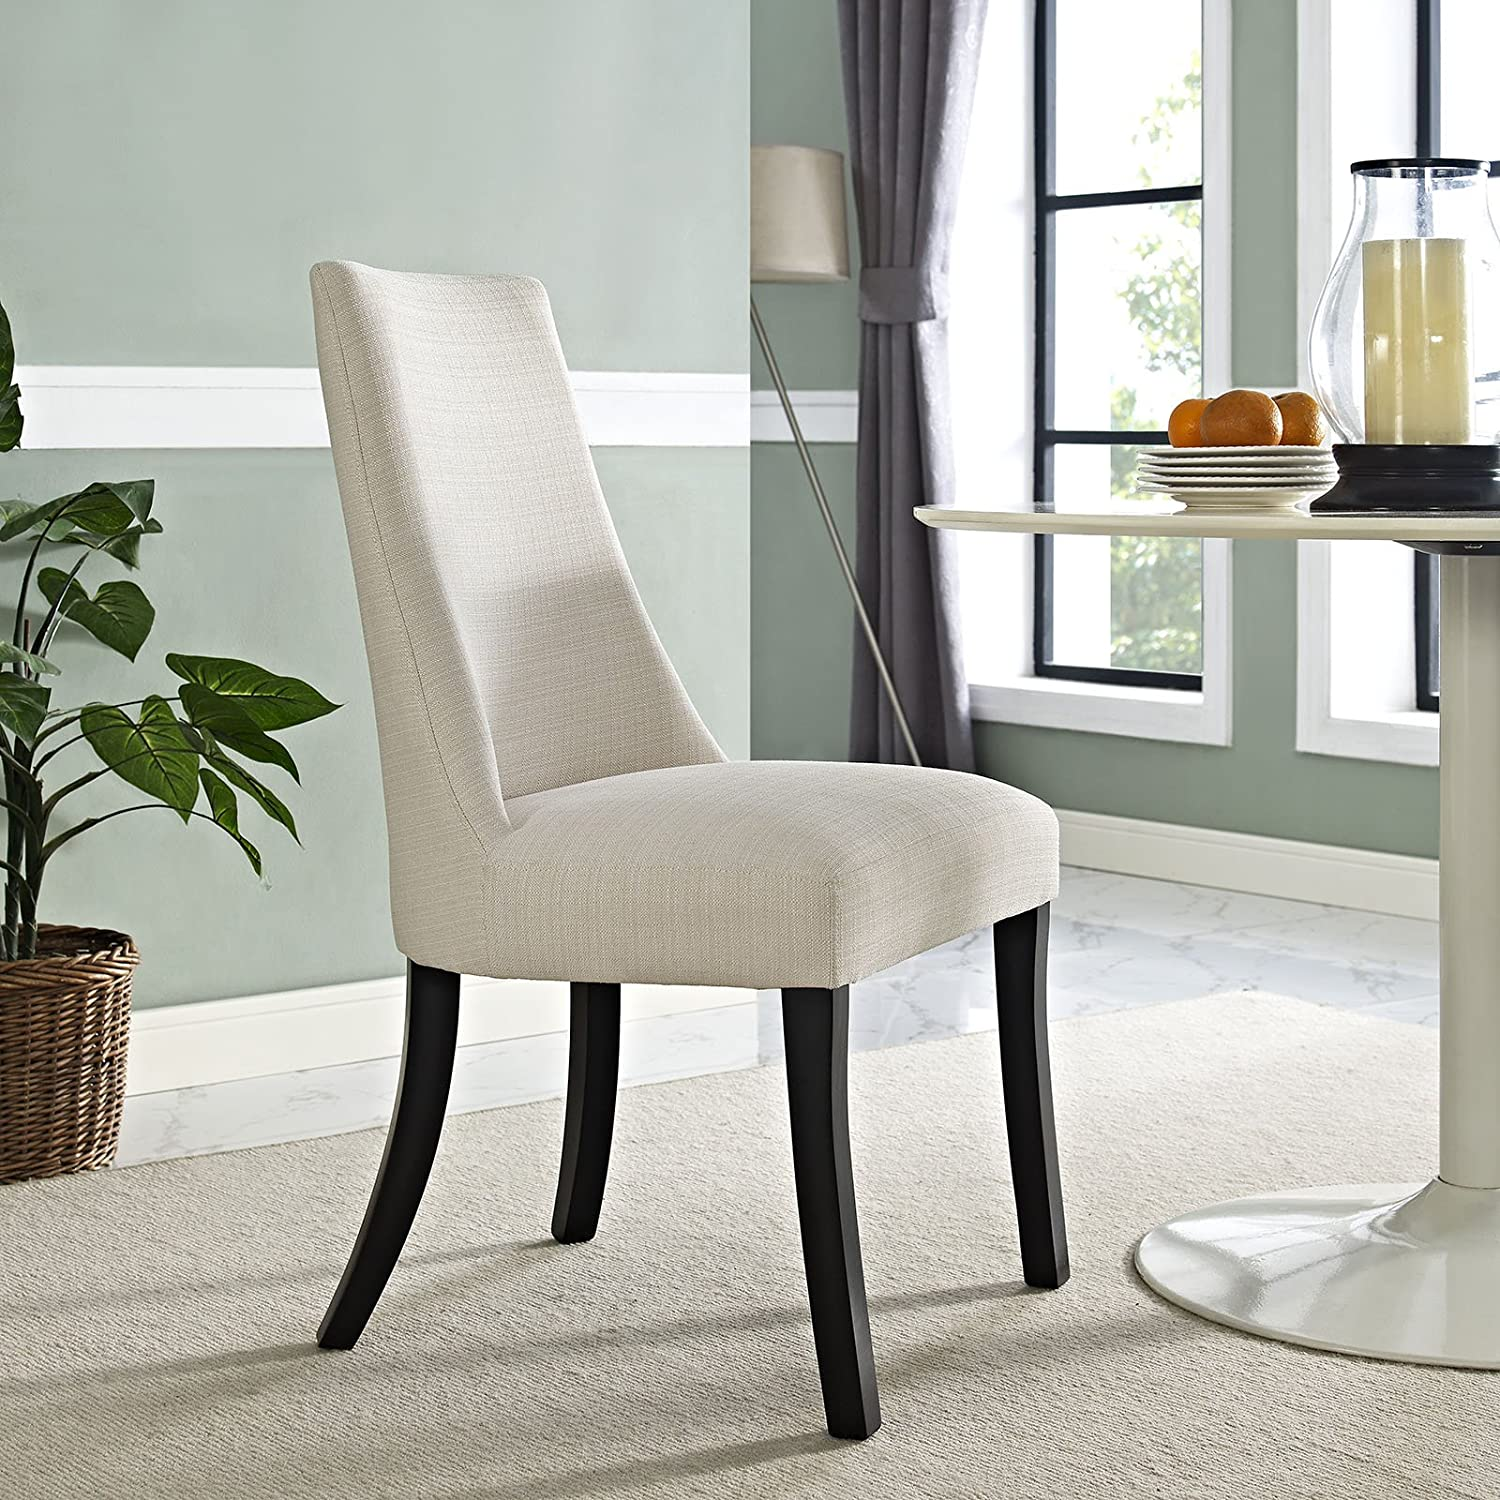 Amazon Modway Reverie Dining Side Chair in Beige Beige Chairs